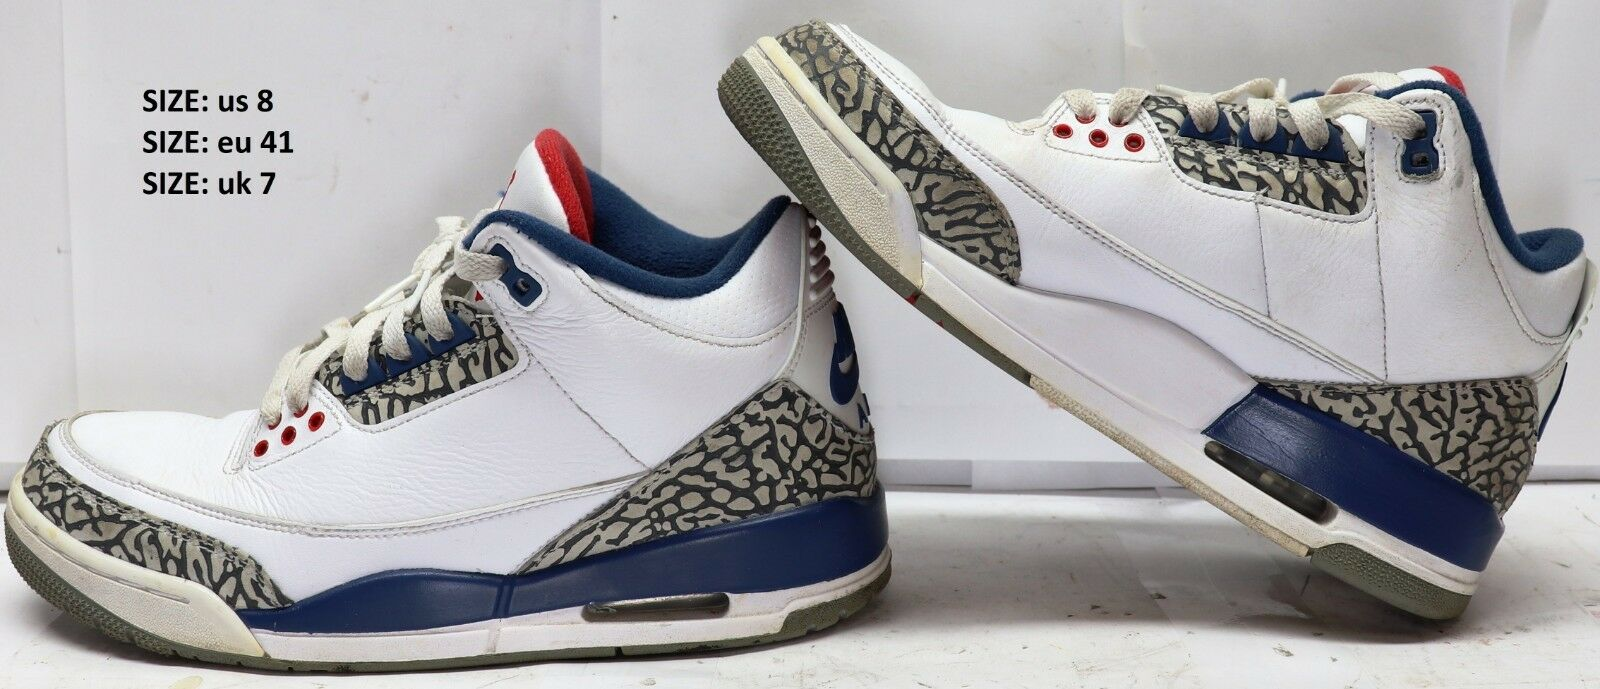 Nike Air Jordan 3 Retro III OG True bluee  2016 854262-106 Size 8 US